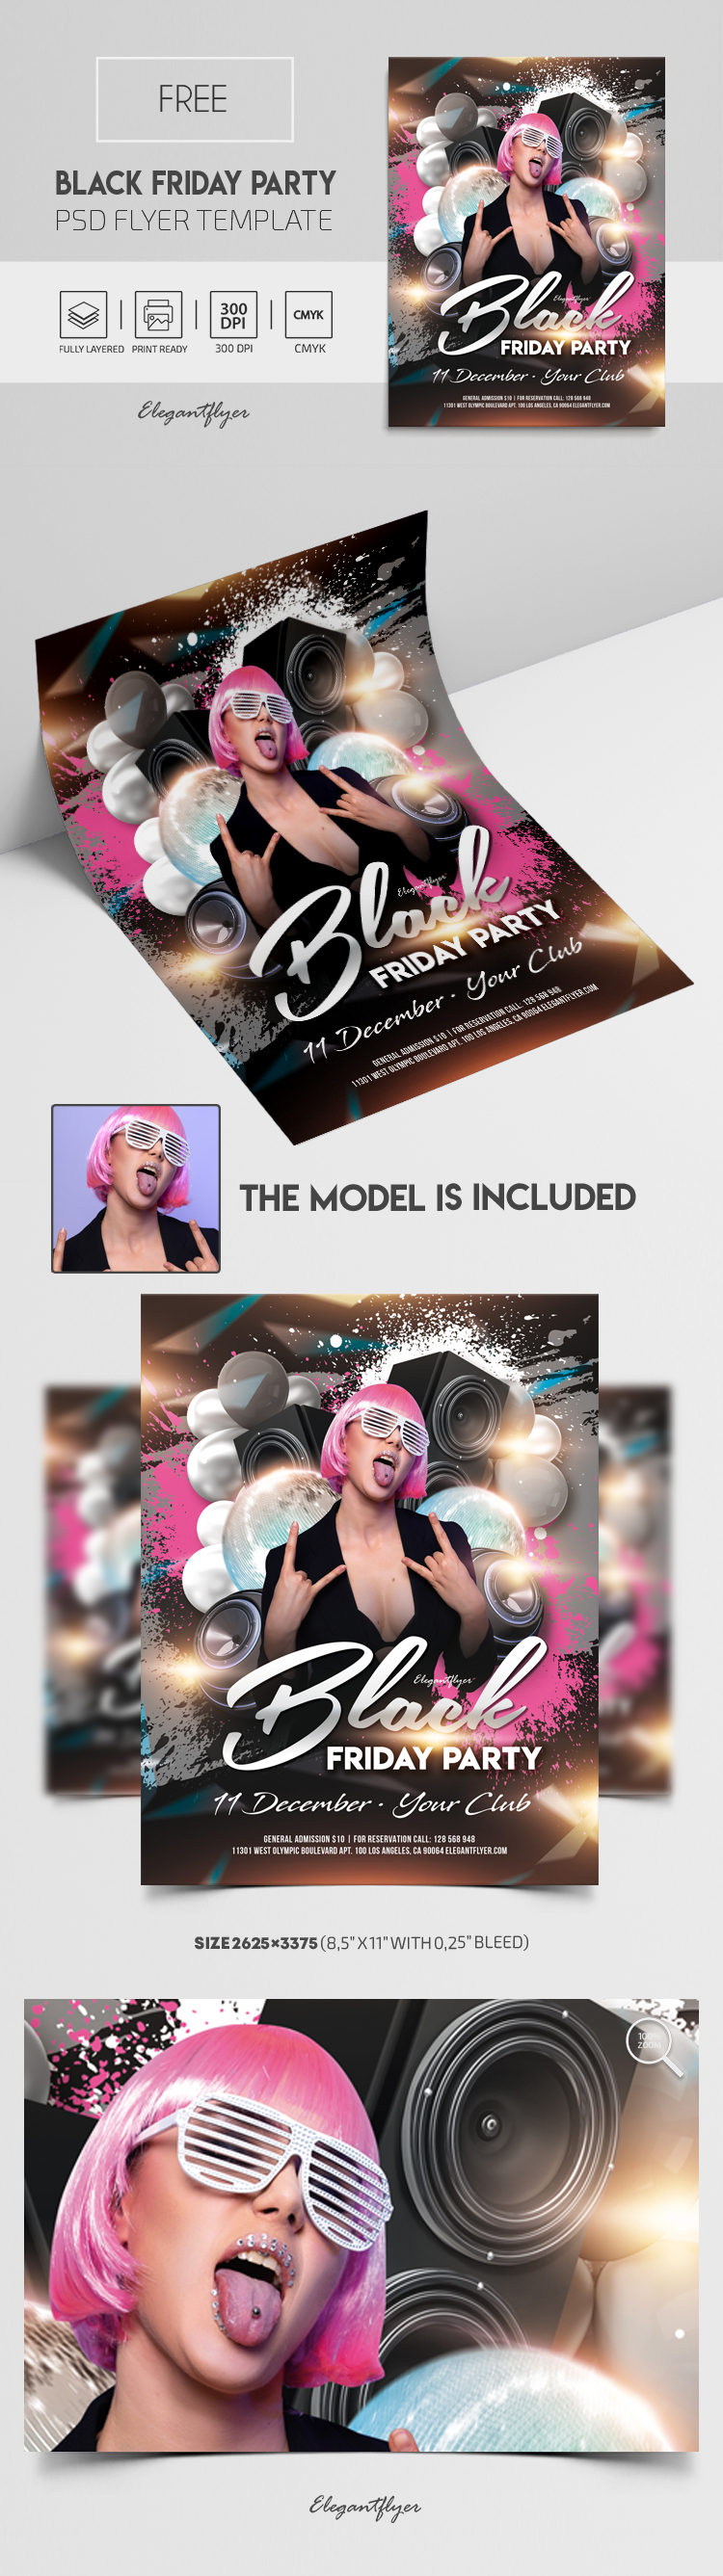 Black Friday Party – Free Flyer PSD Template